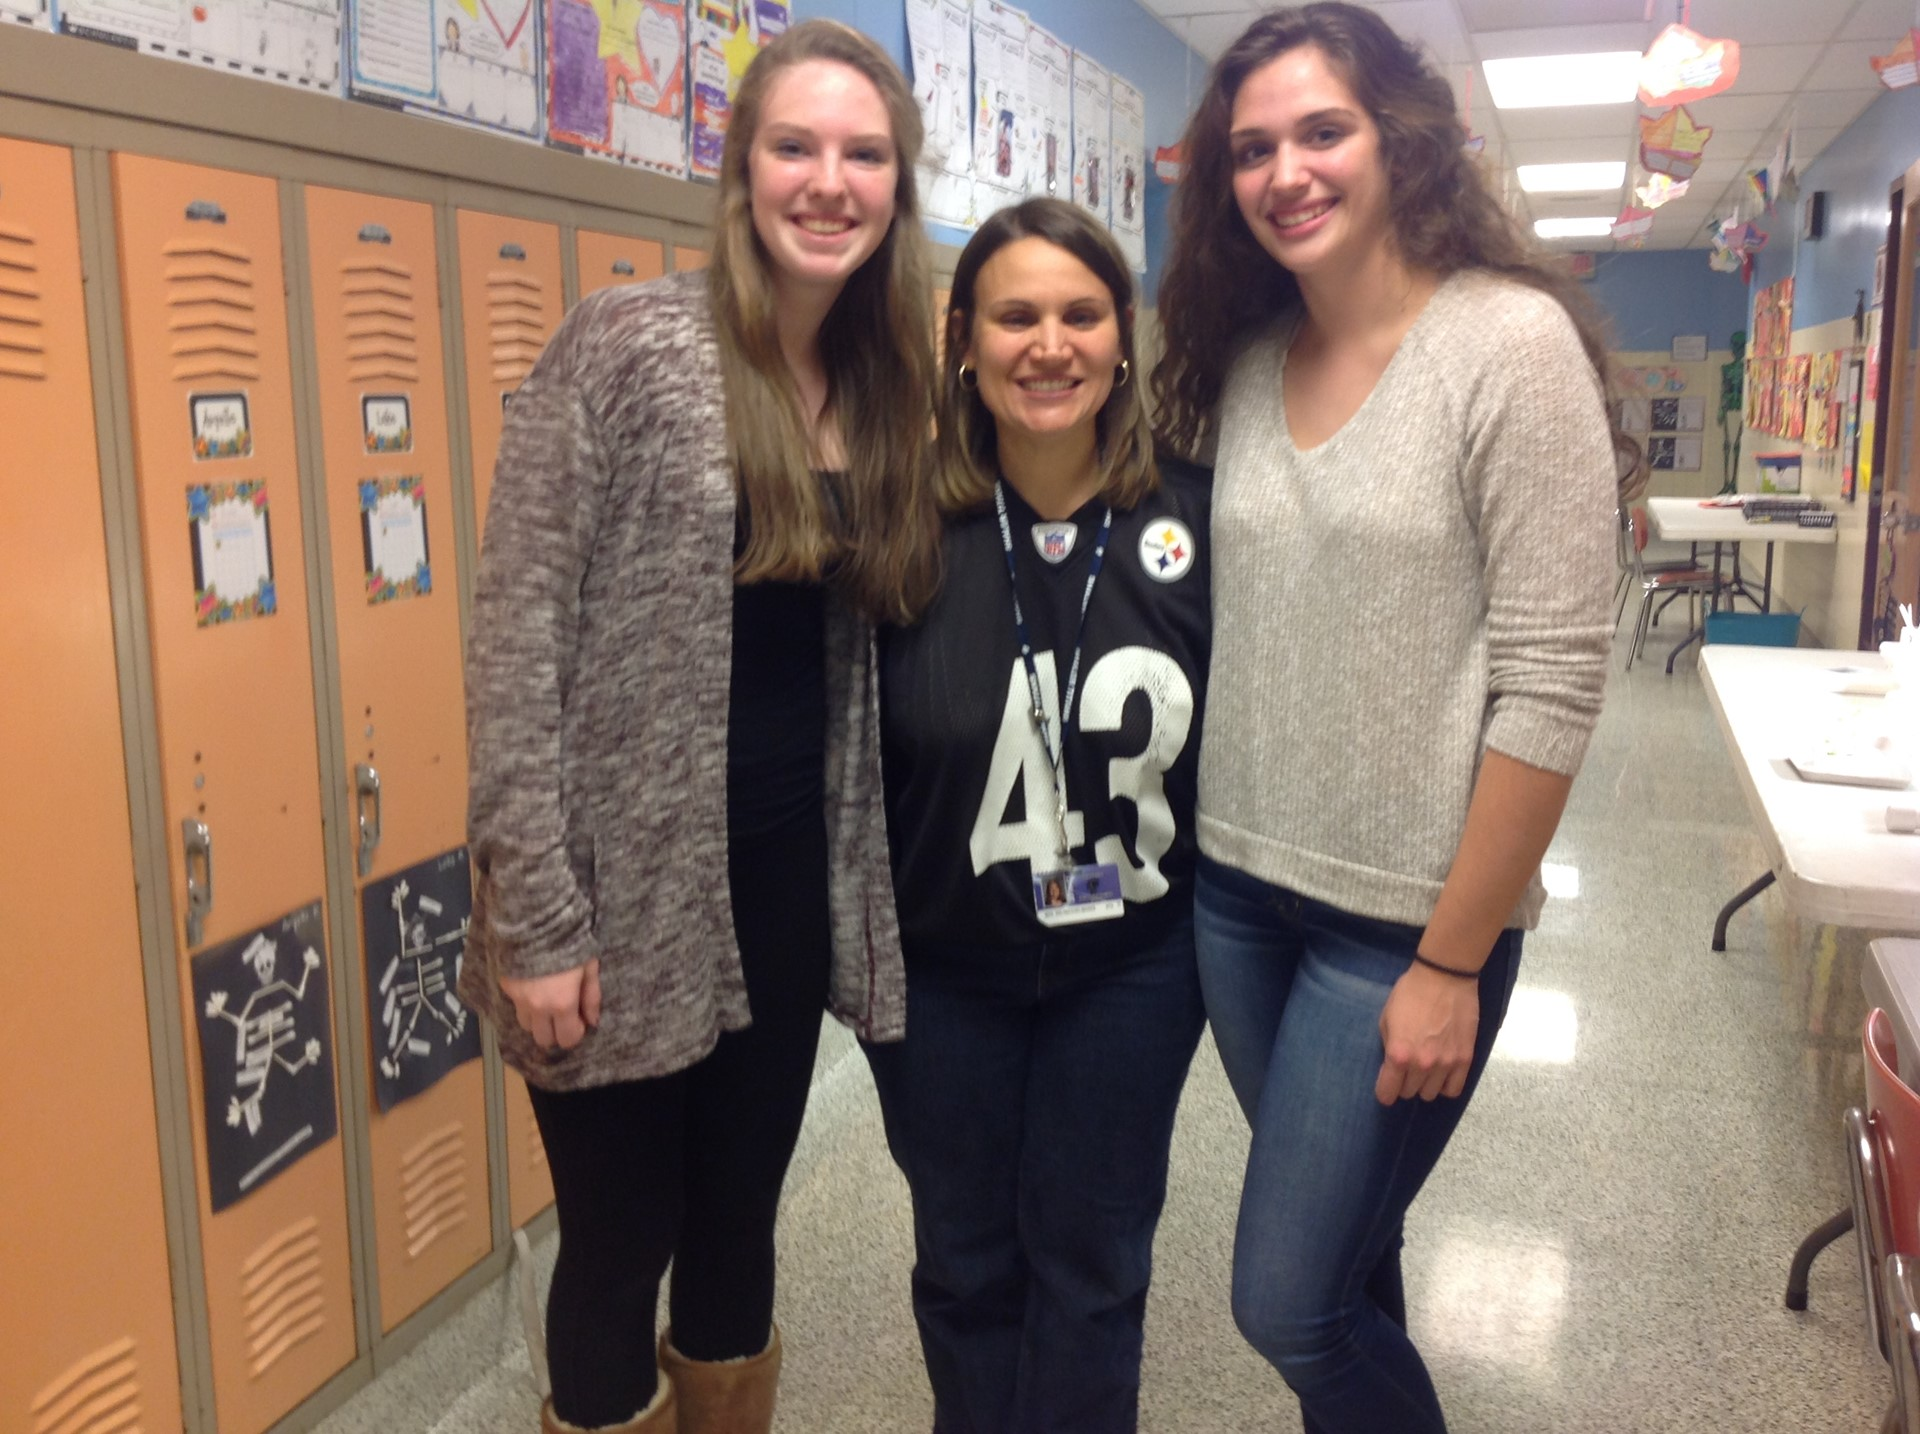 Mrs. DM poses with Shaler Area High School students who presented information to 3rd grade students